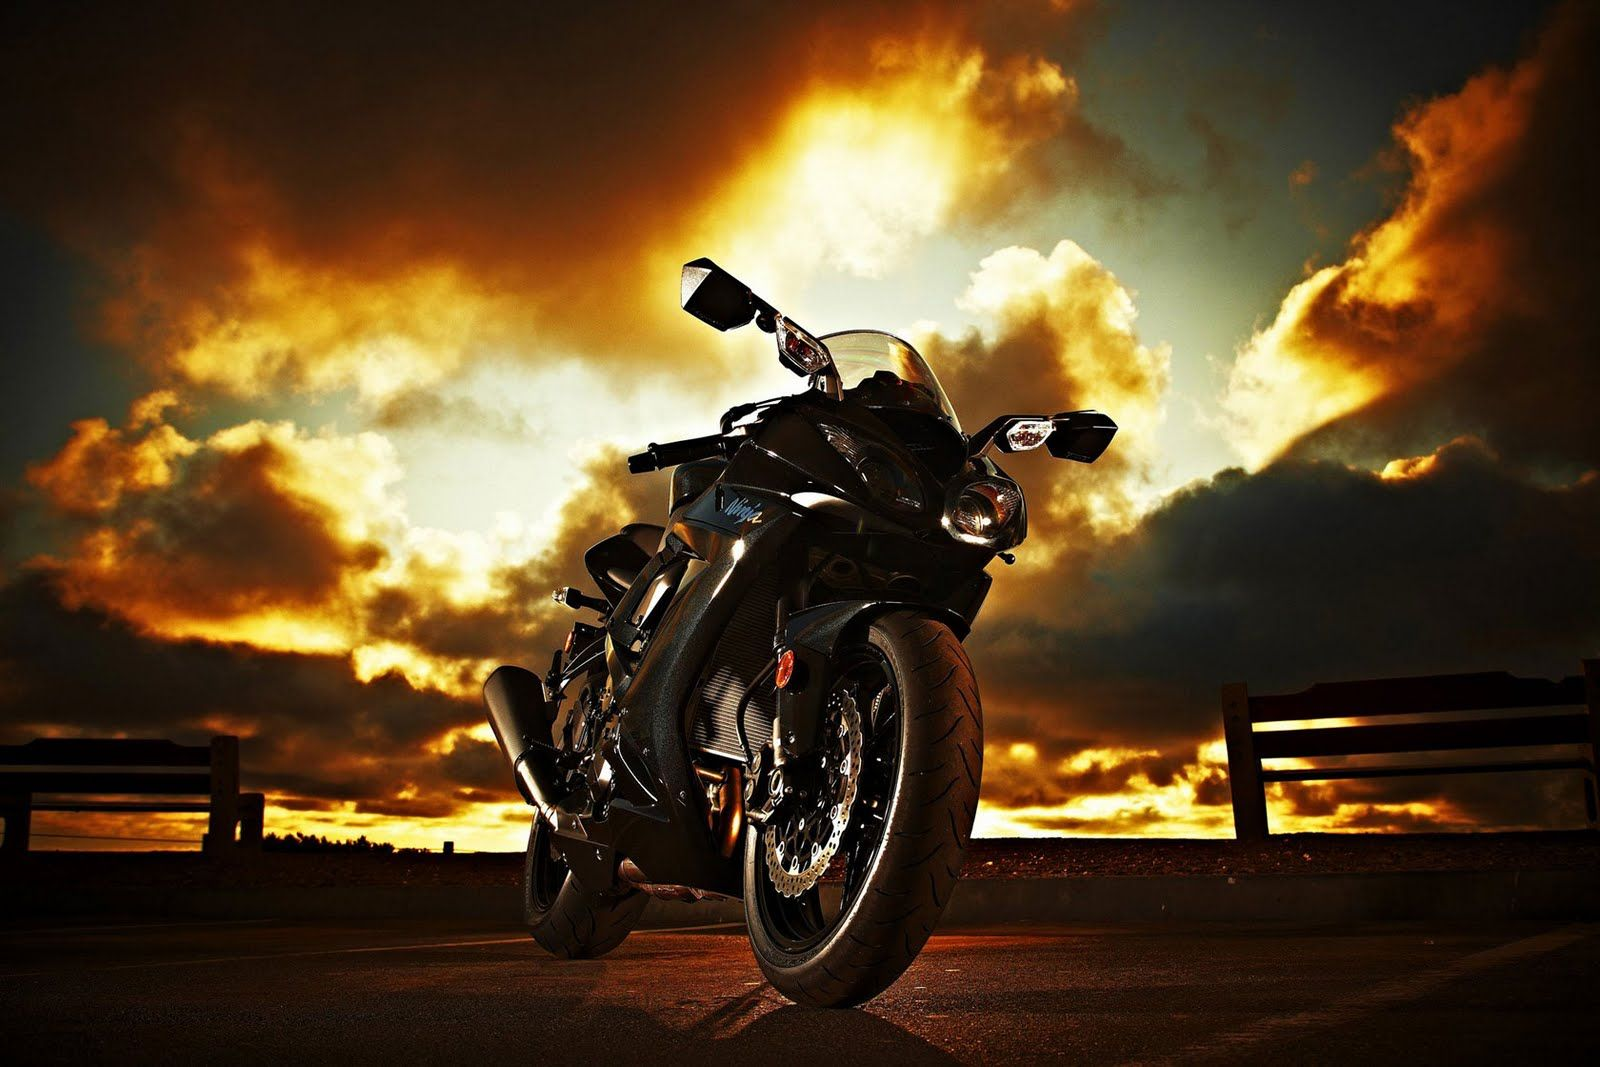 Kawasaki Ninja Zx 10r Background HD Desktop Wallpapers